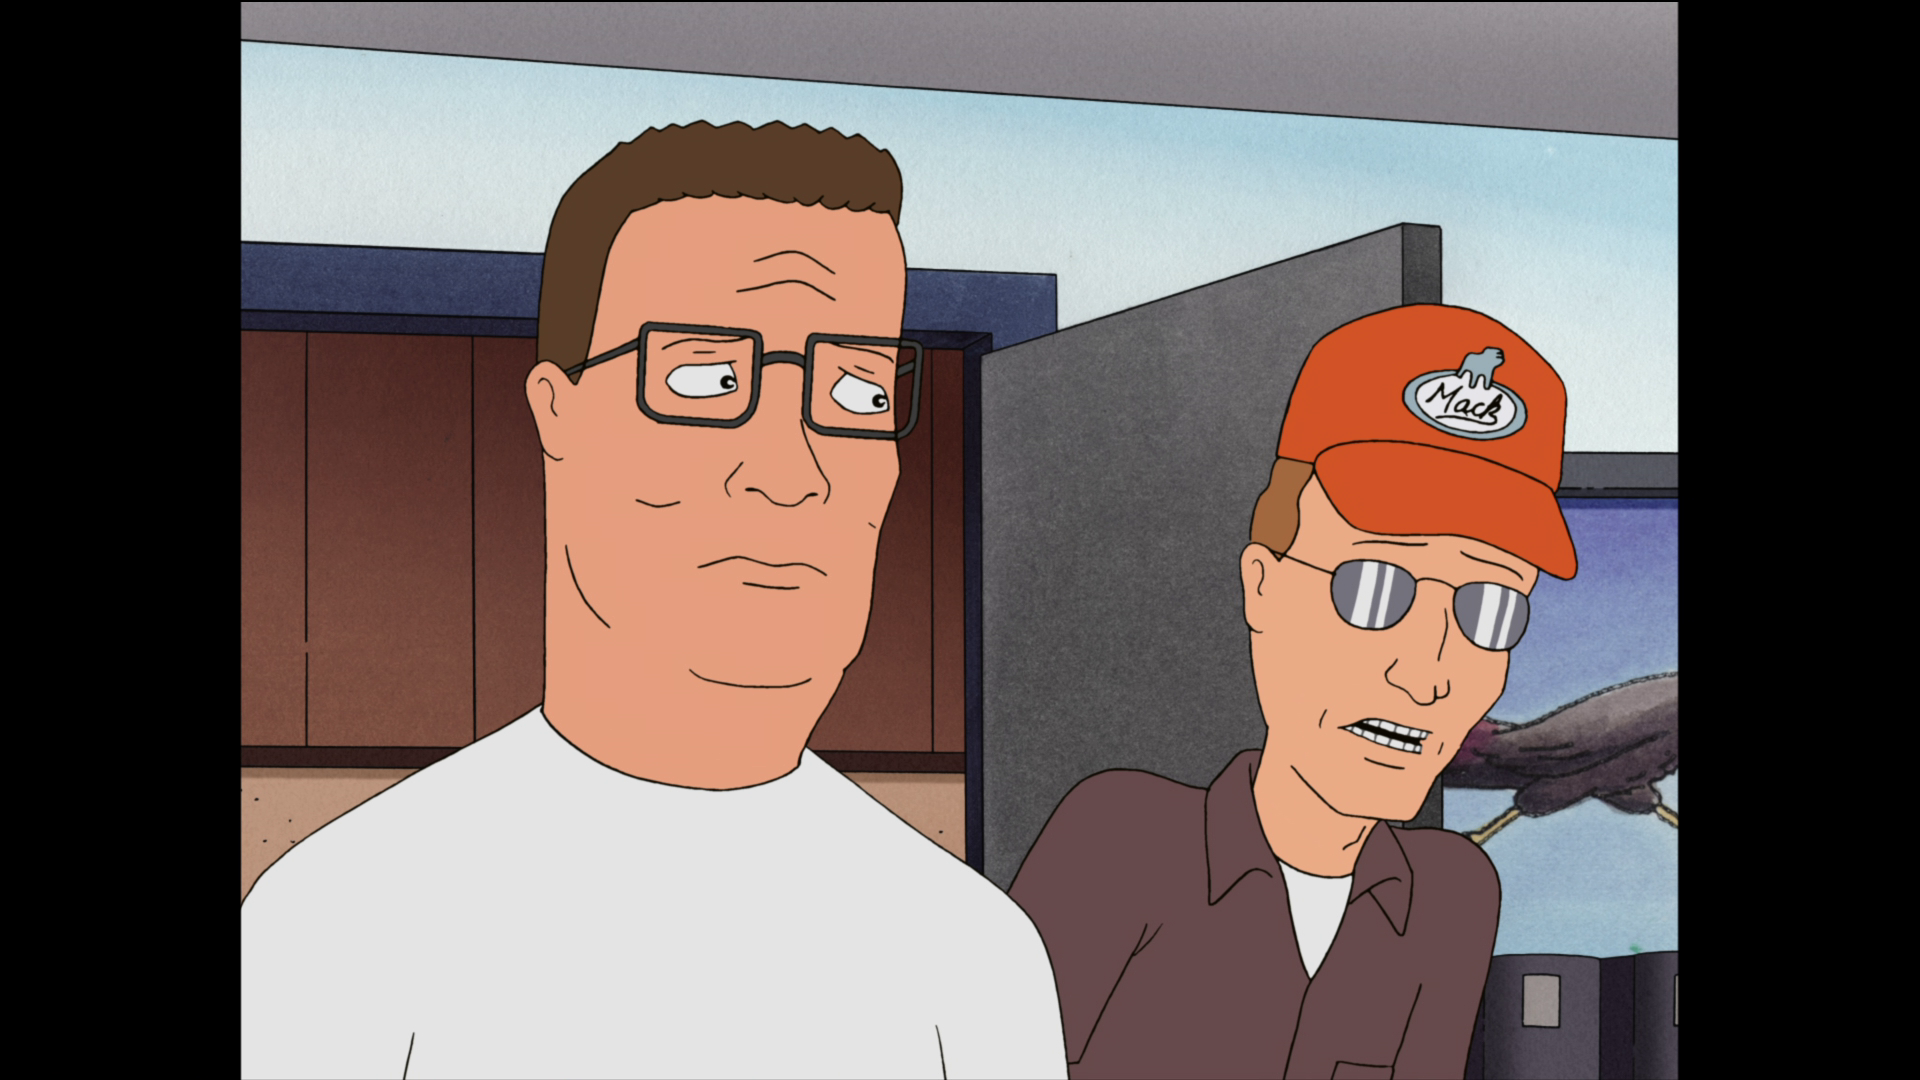 King of the Hill S13E02 BluRay REMUX 1080p AVC DTS-HD MA 5.1 - KRaLiMaRKo